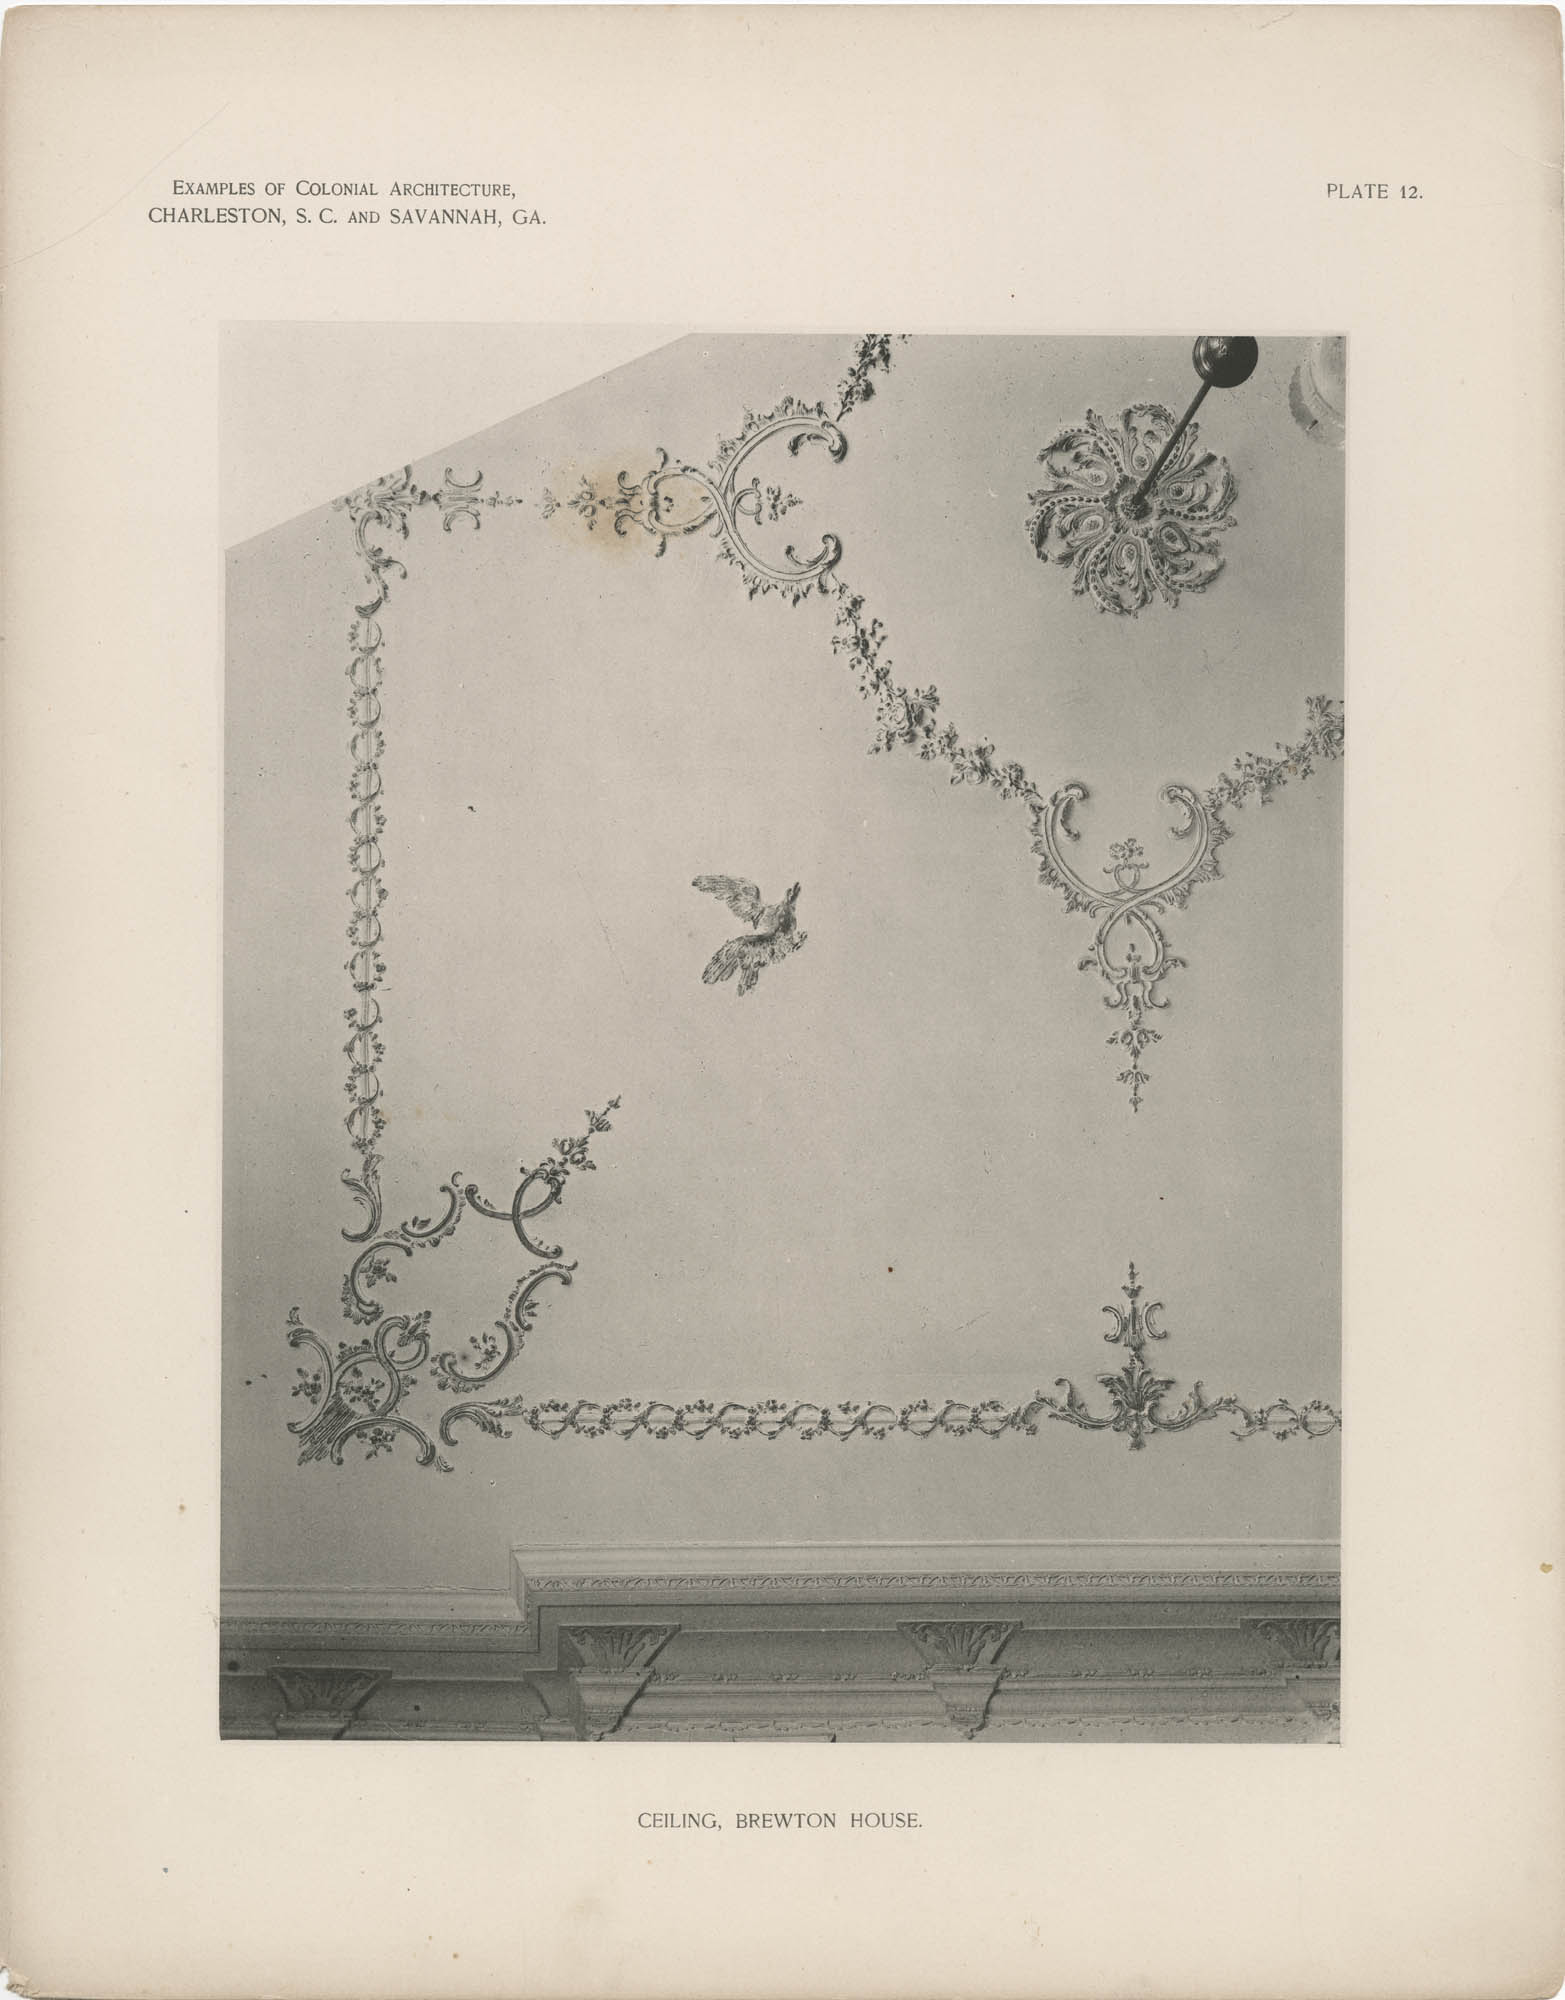 Plate 12: Ceiling, Brewton House